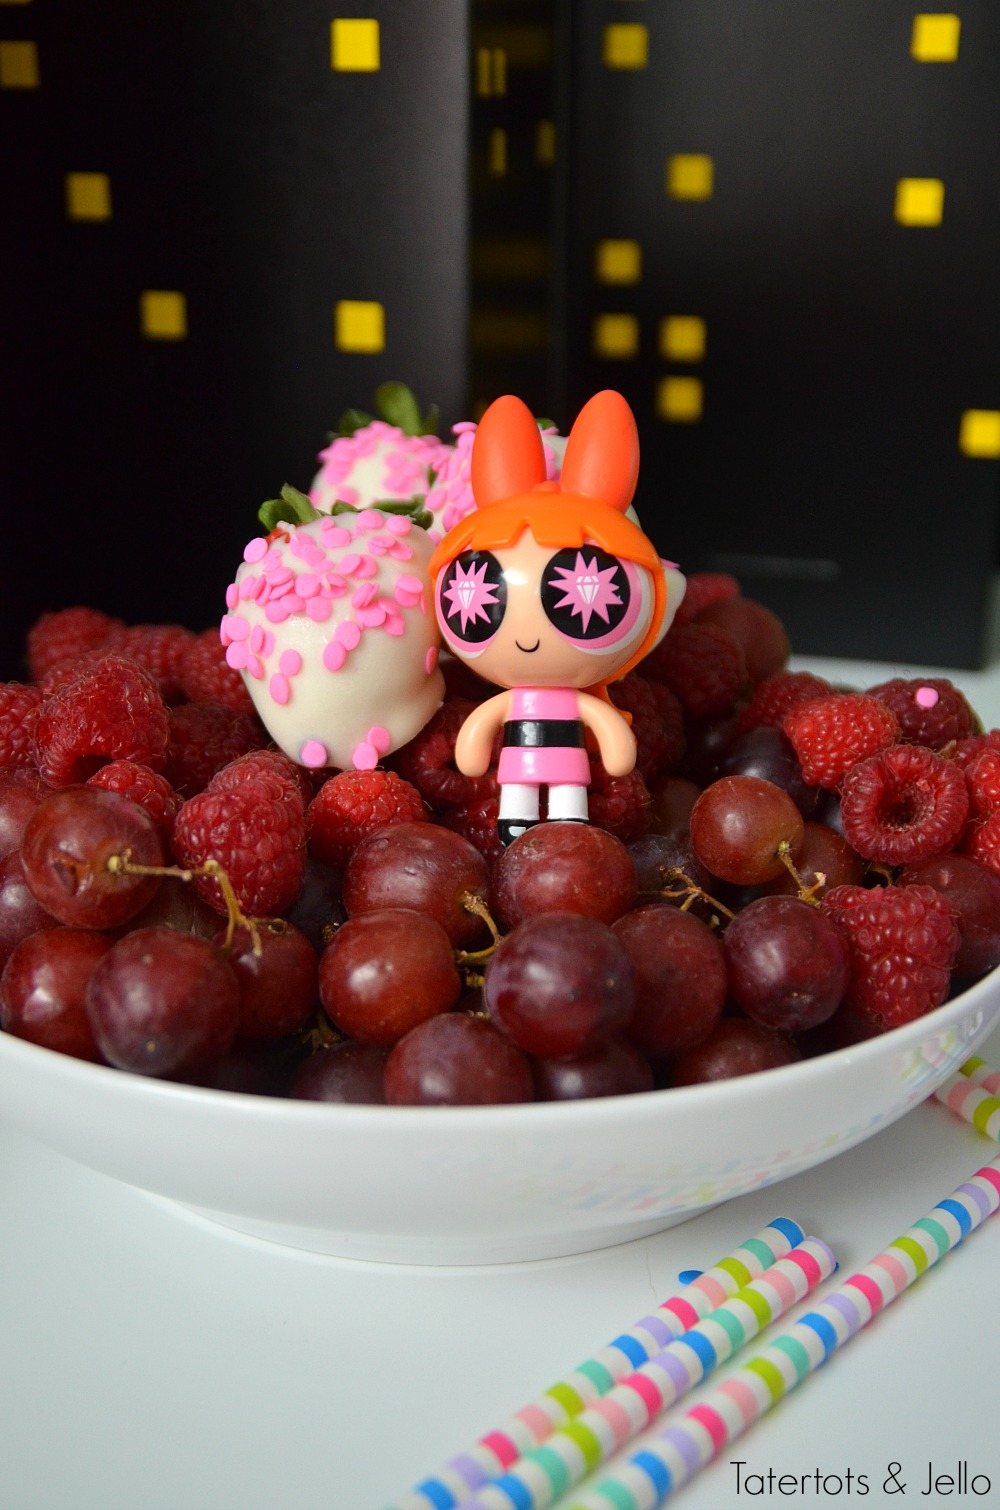 Powerpuff Girls Party Ideas. Make healthy fruit trays in each of the character's colors - pink, blue and green!